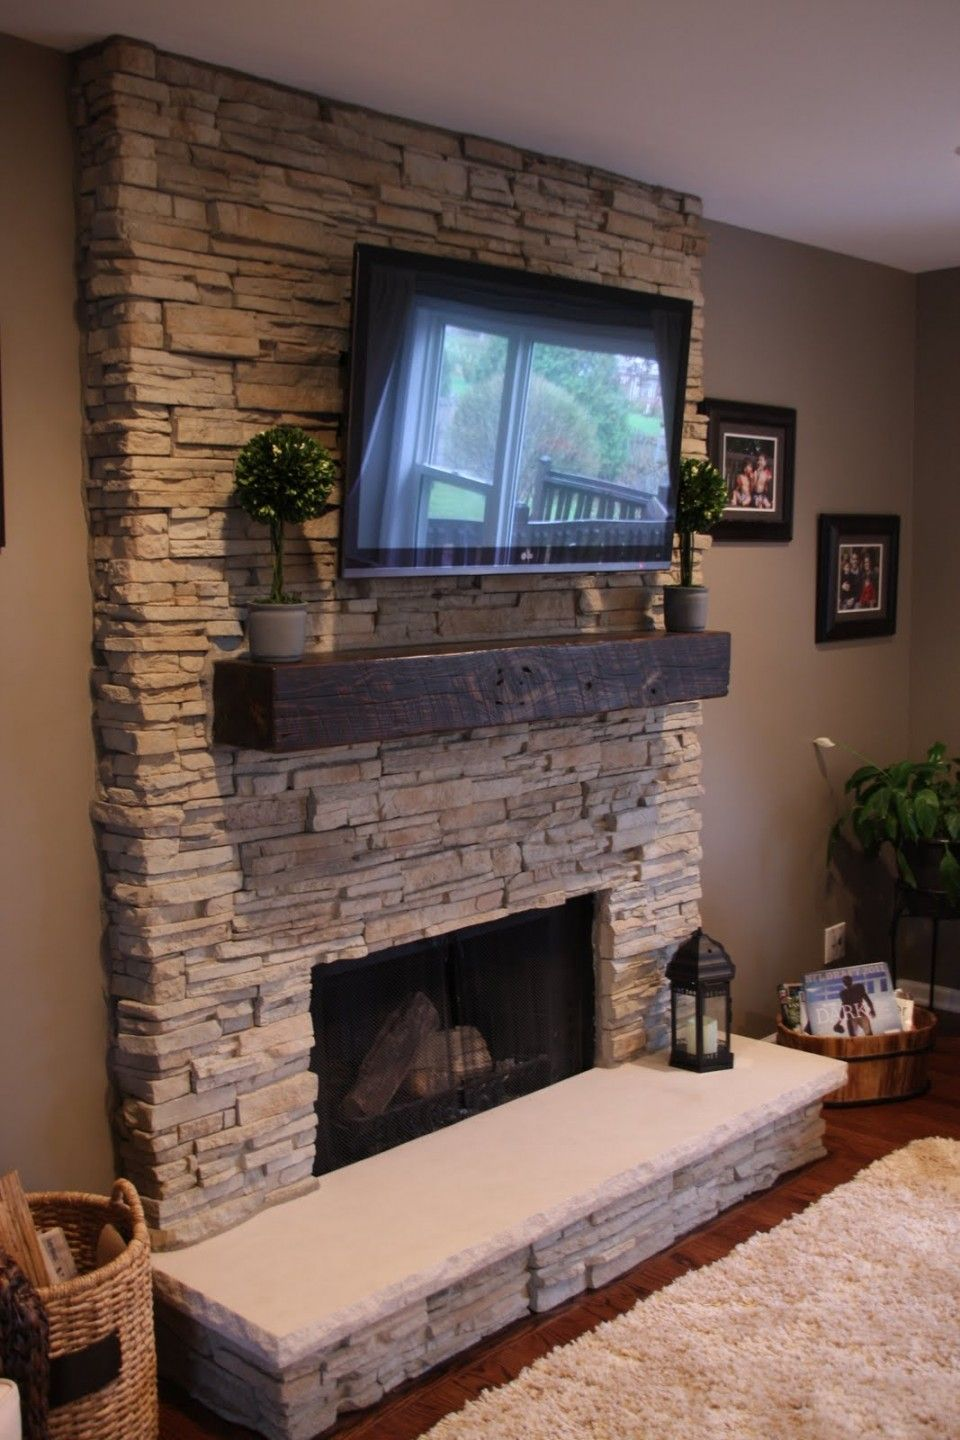 Ordinaire 20+ Living Room With Fireplace That Will Warm You All Winter